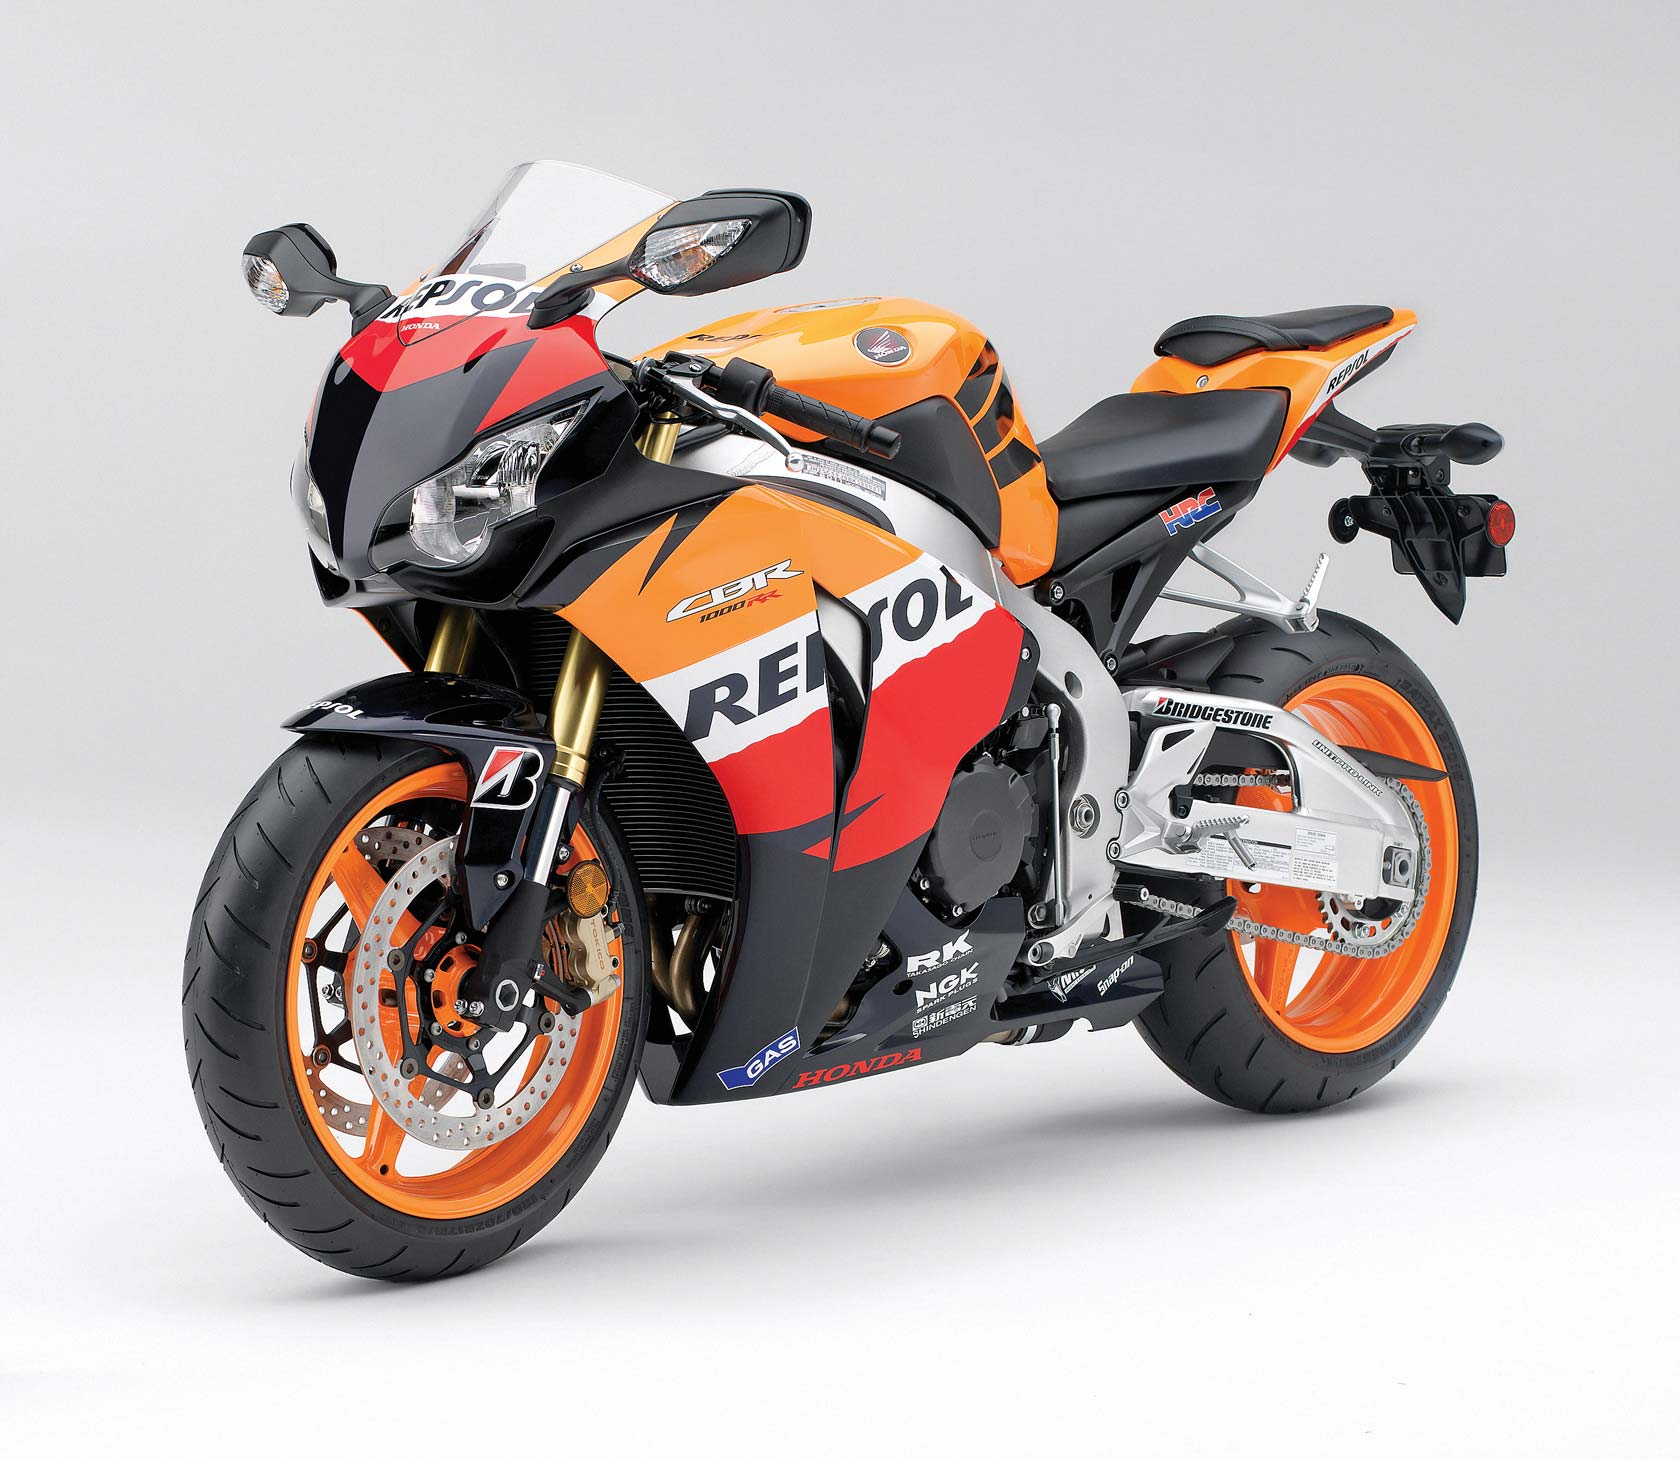 CBR1000RR Repsol 2015 HD Wallpapers  Wallpaper Cave